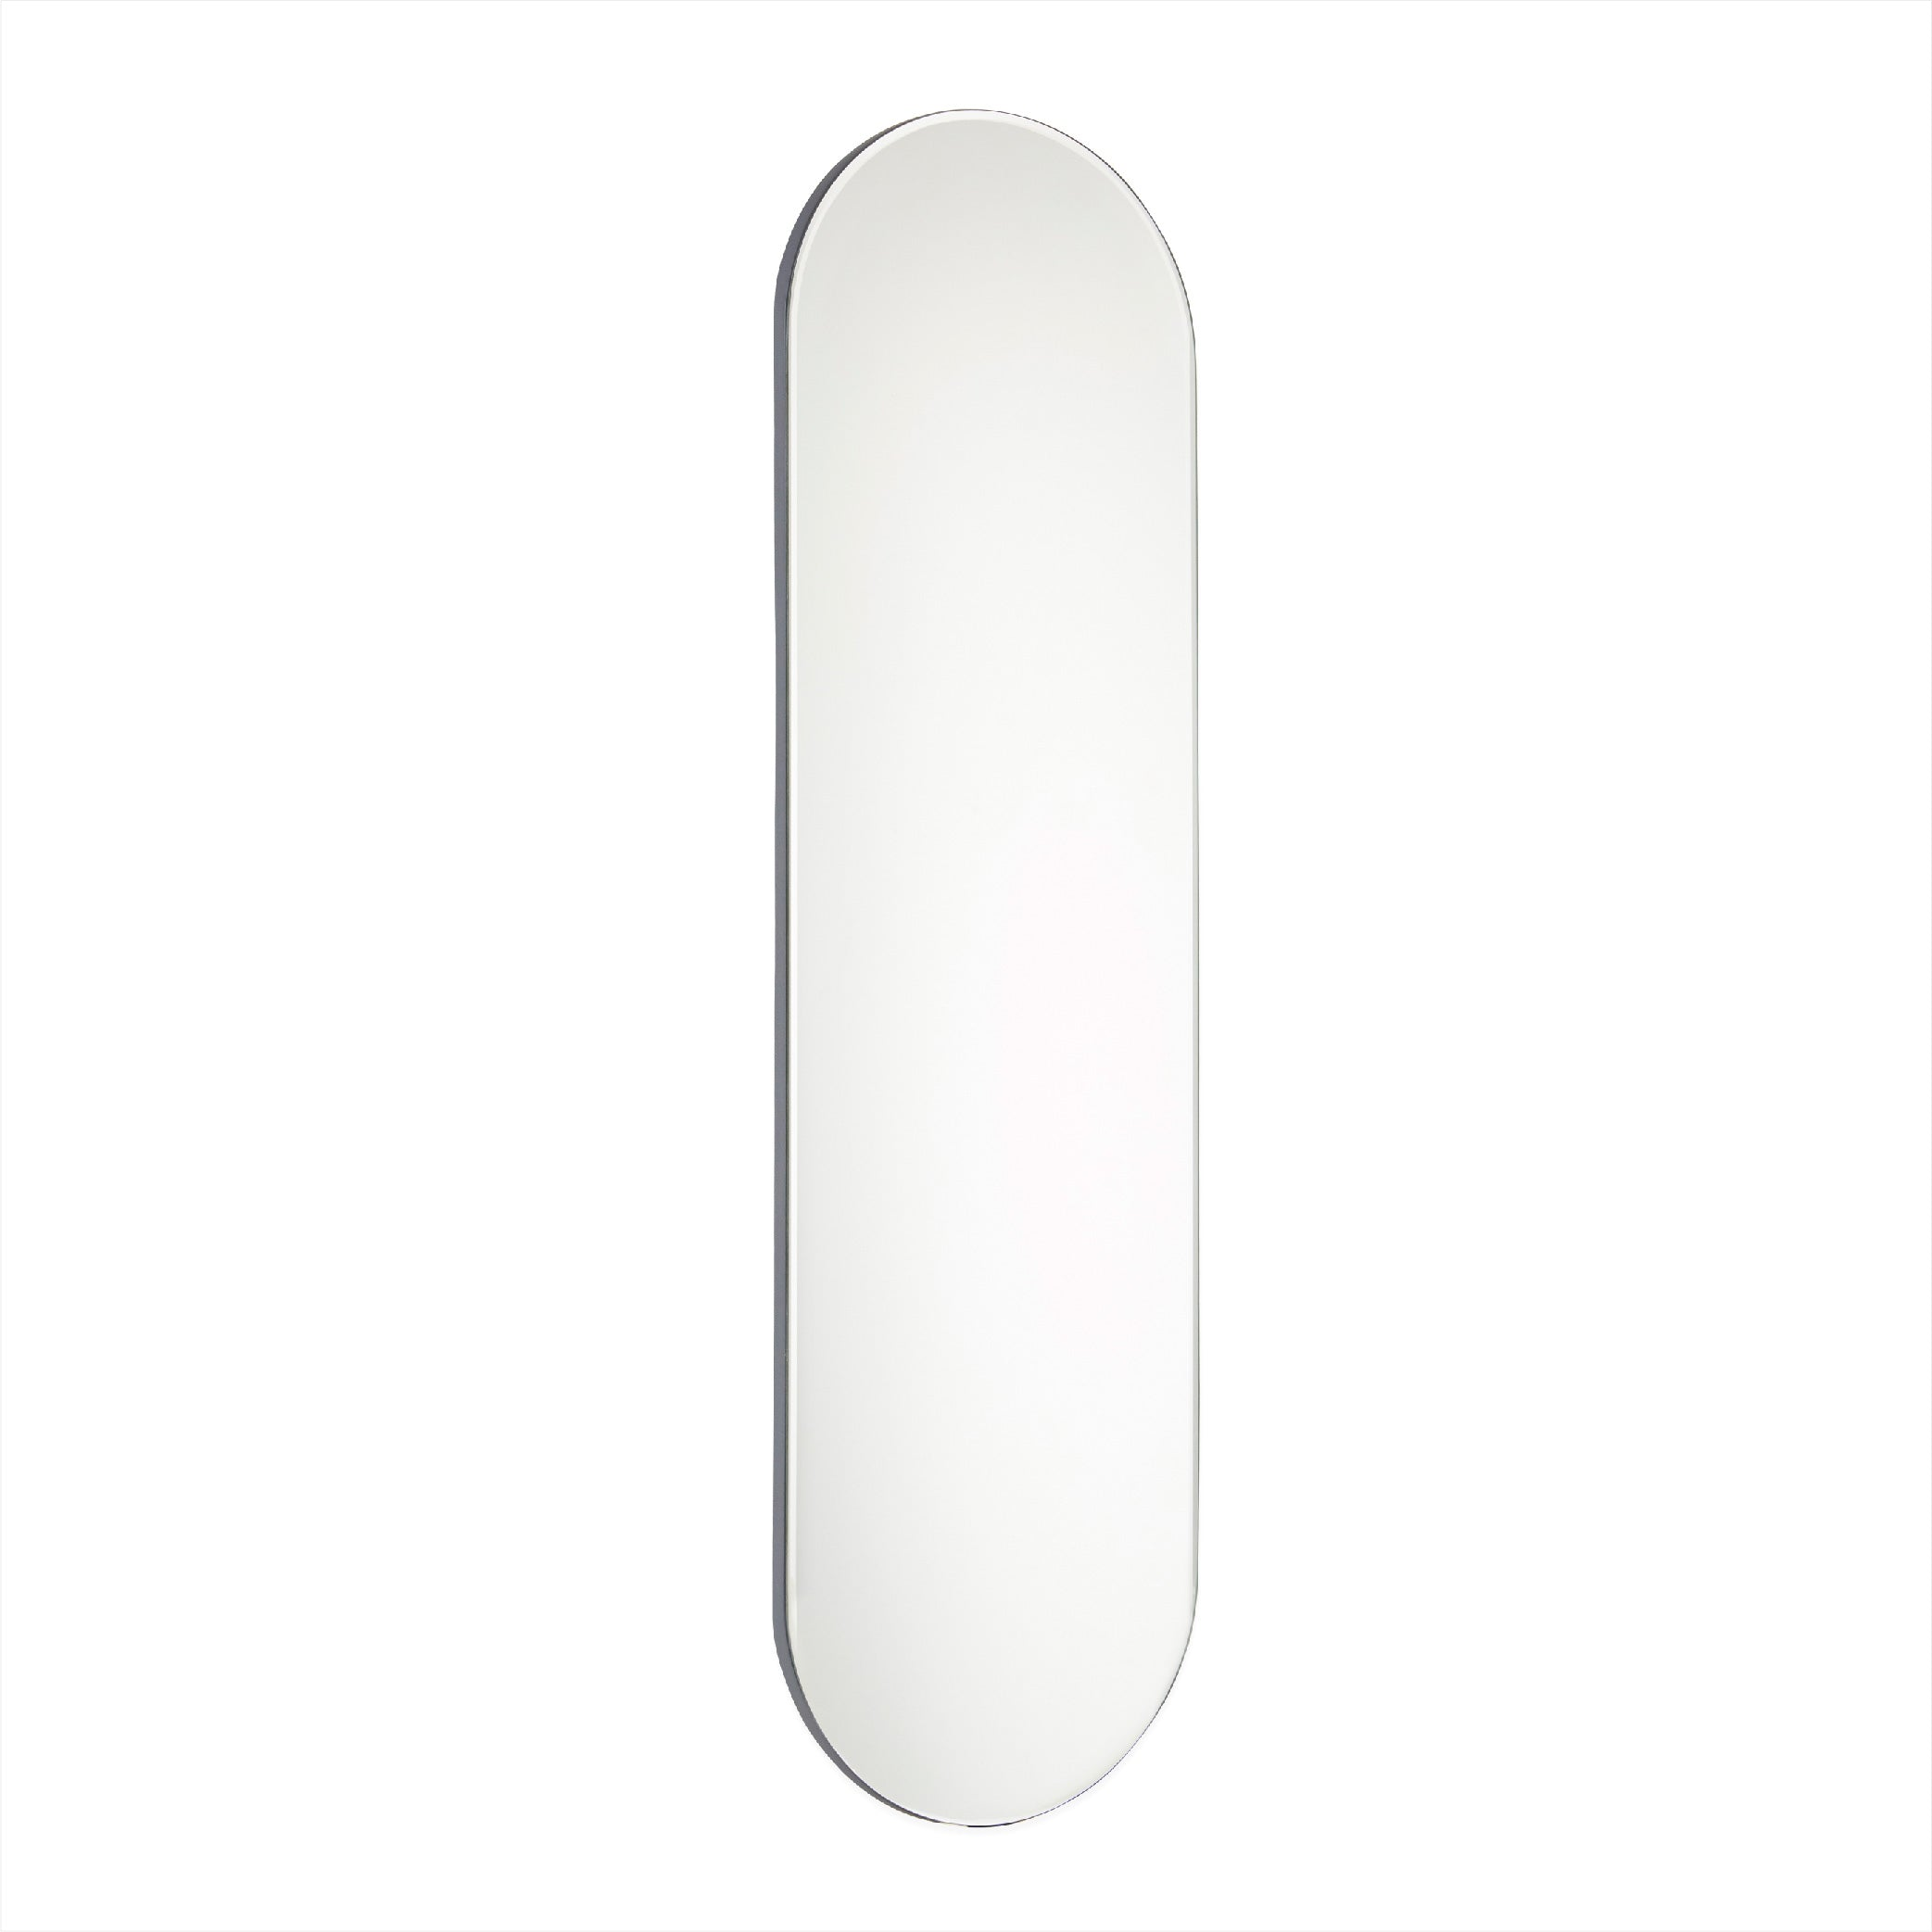 Renga Oval Mirror - Anthracite